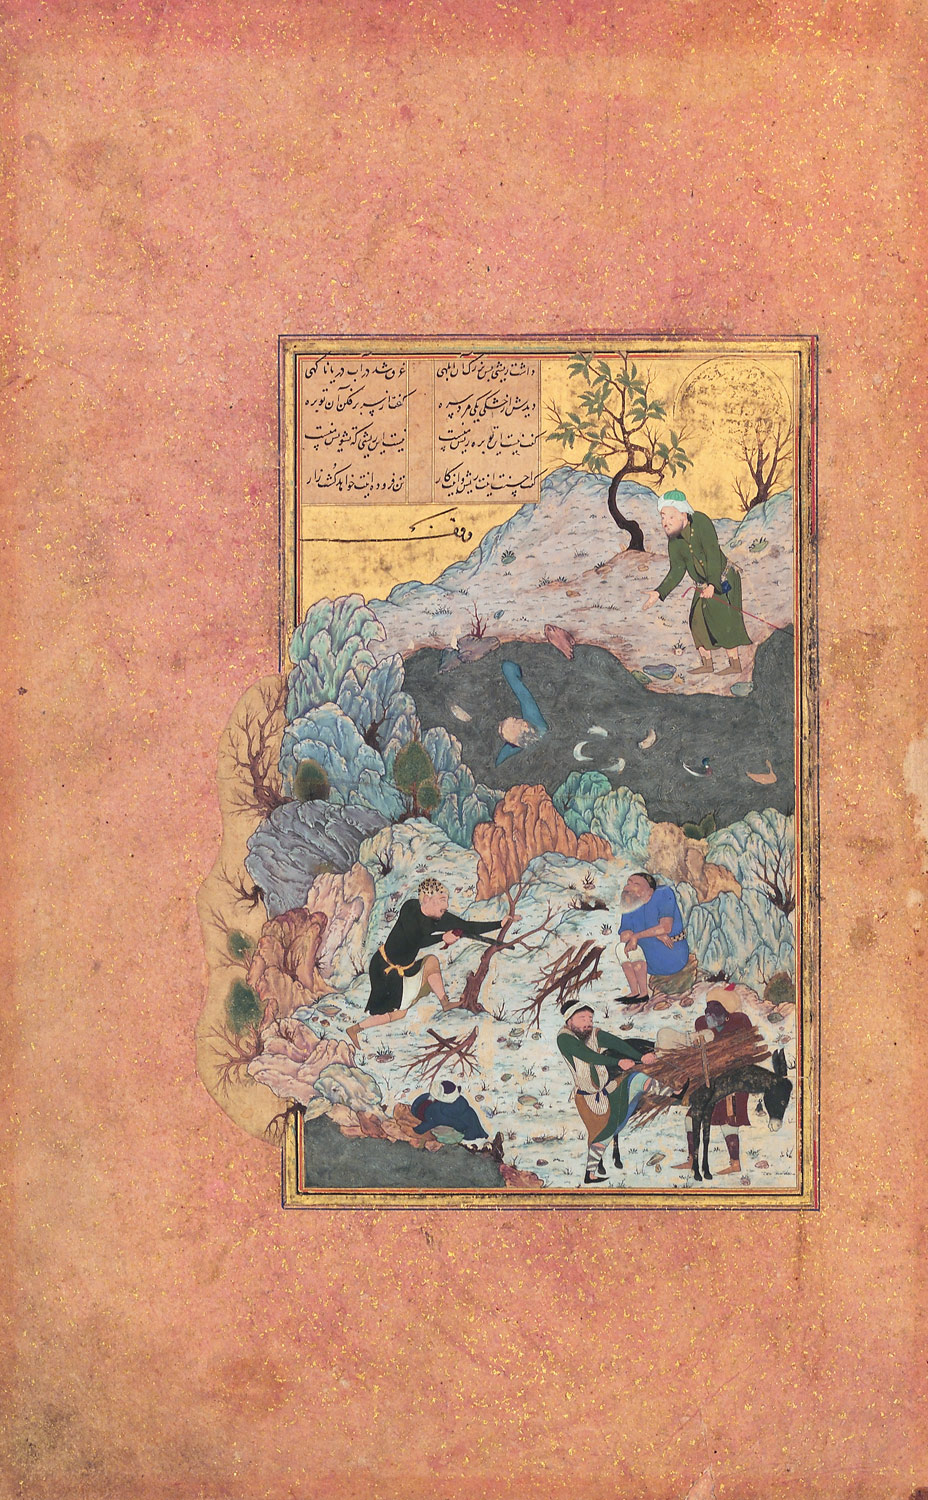 The Anecdote of the Man Who Fell into the Water, Folio 44r from a Mantiq al-tair (Language of the Birds)